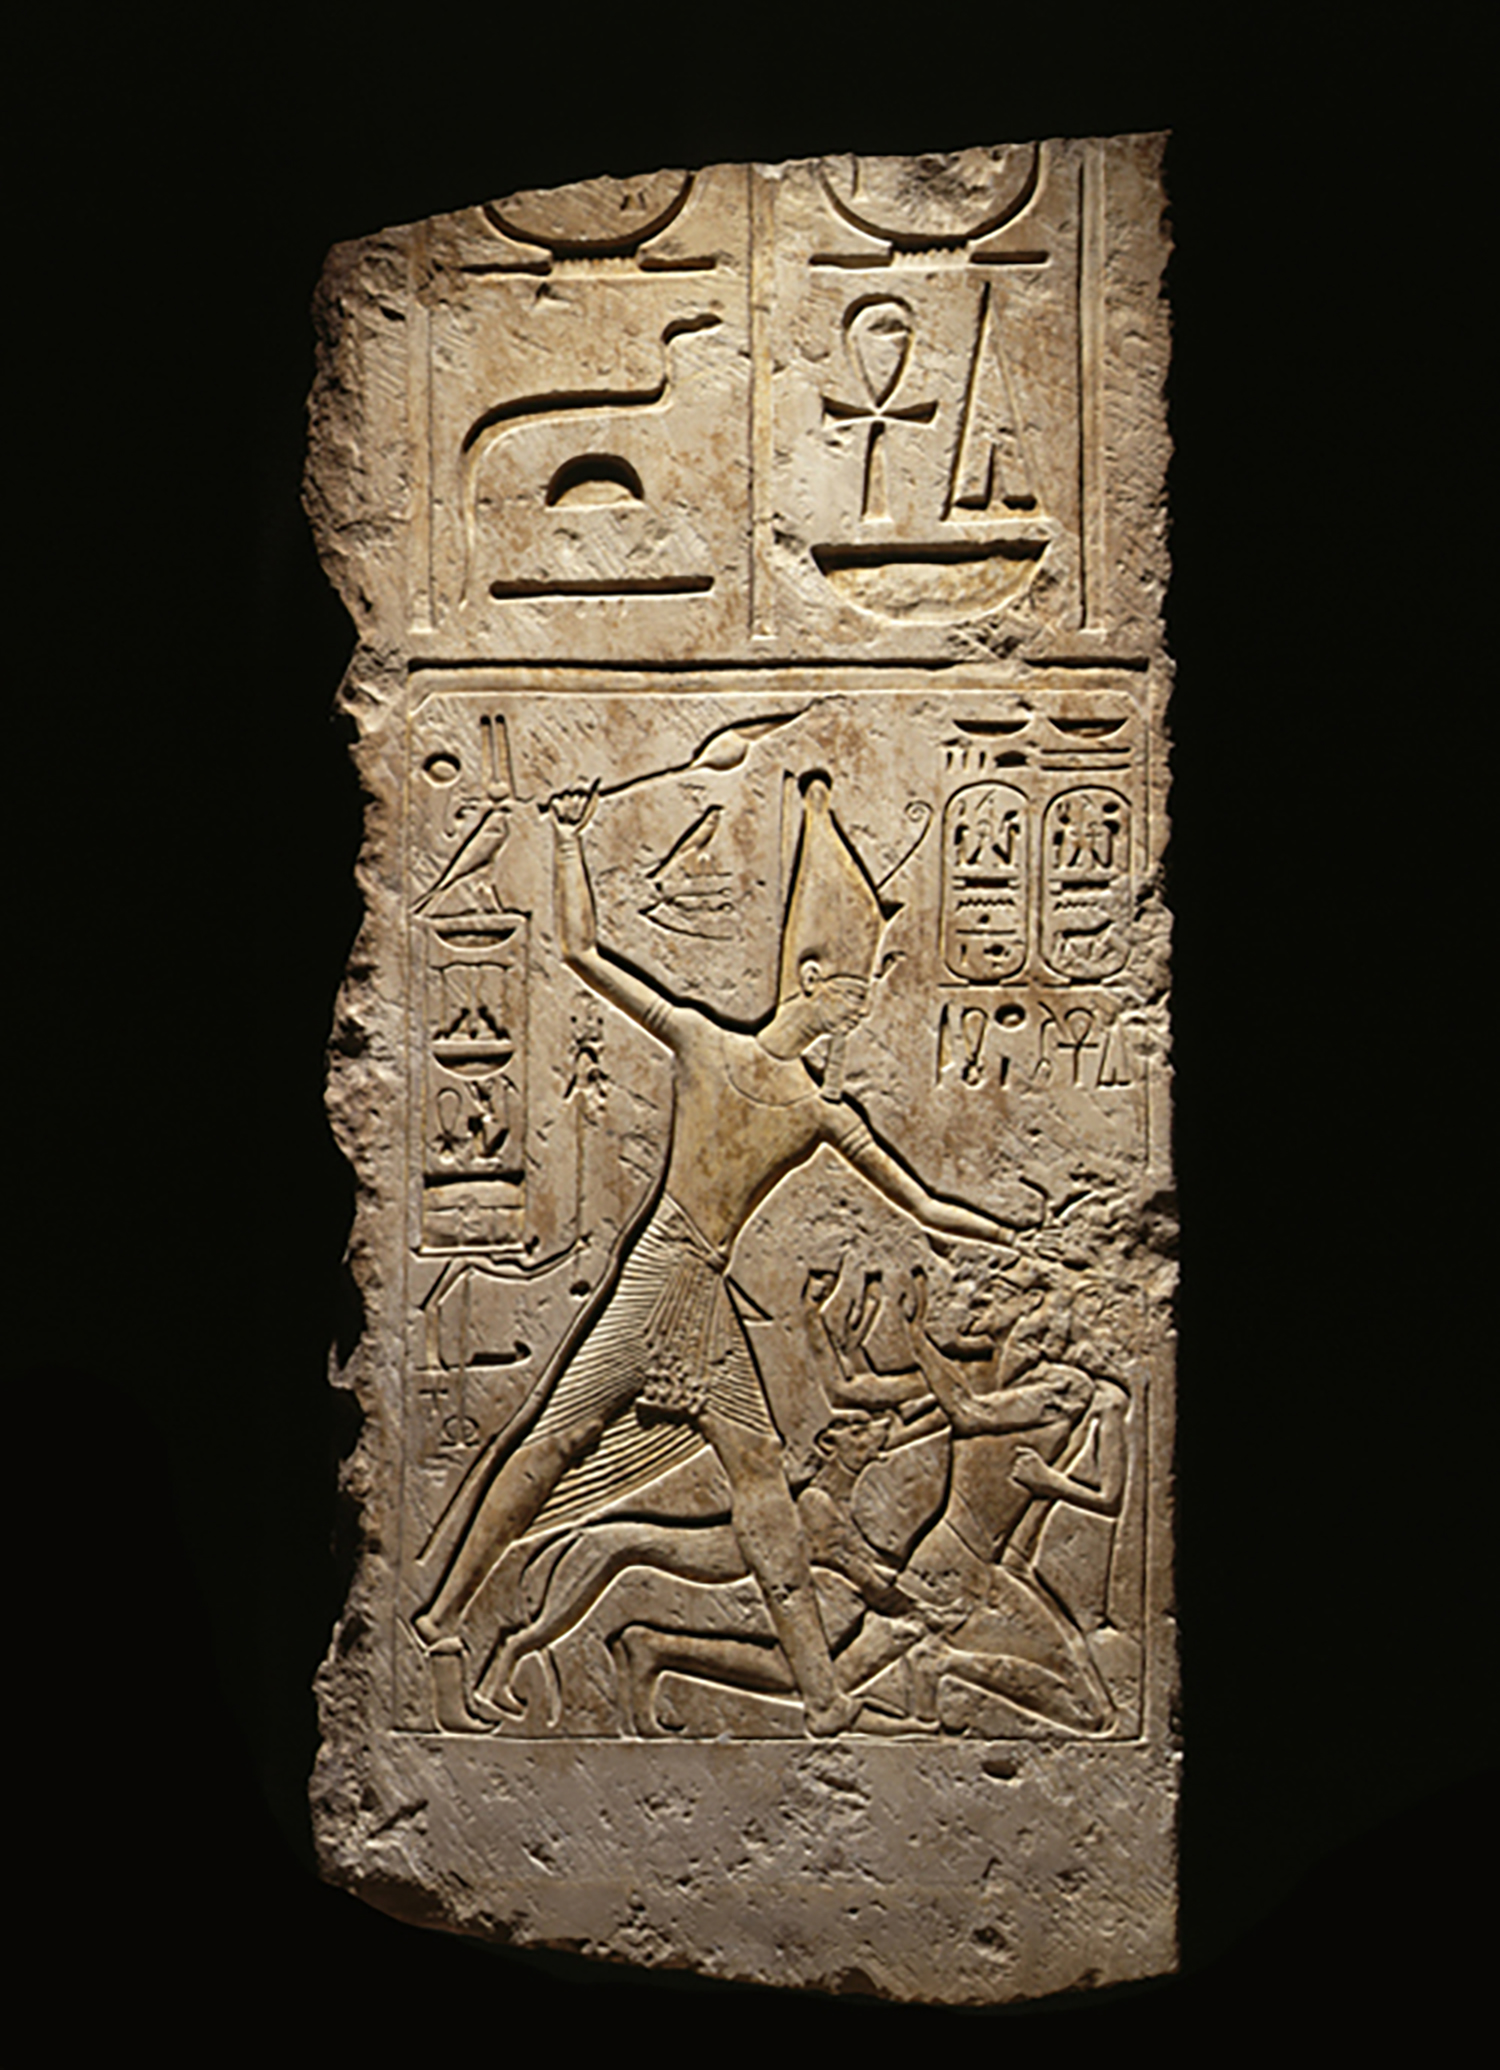 Figure 22: Limestone relief depicting Merneptah attacking enemies accompanied by a lioness, from the palace of Merenptah at Memphis, Dynasty 19 (1213-1204 BCE). Penn Museum E17527.